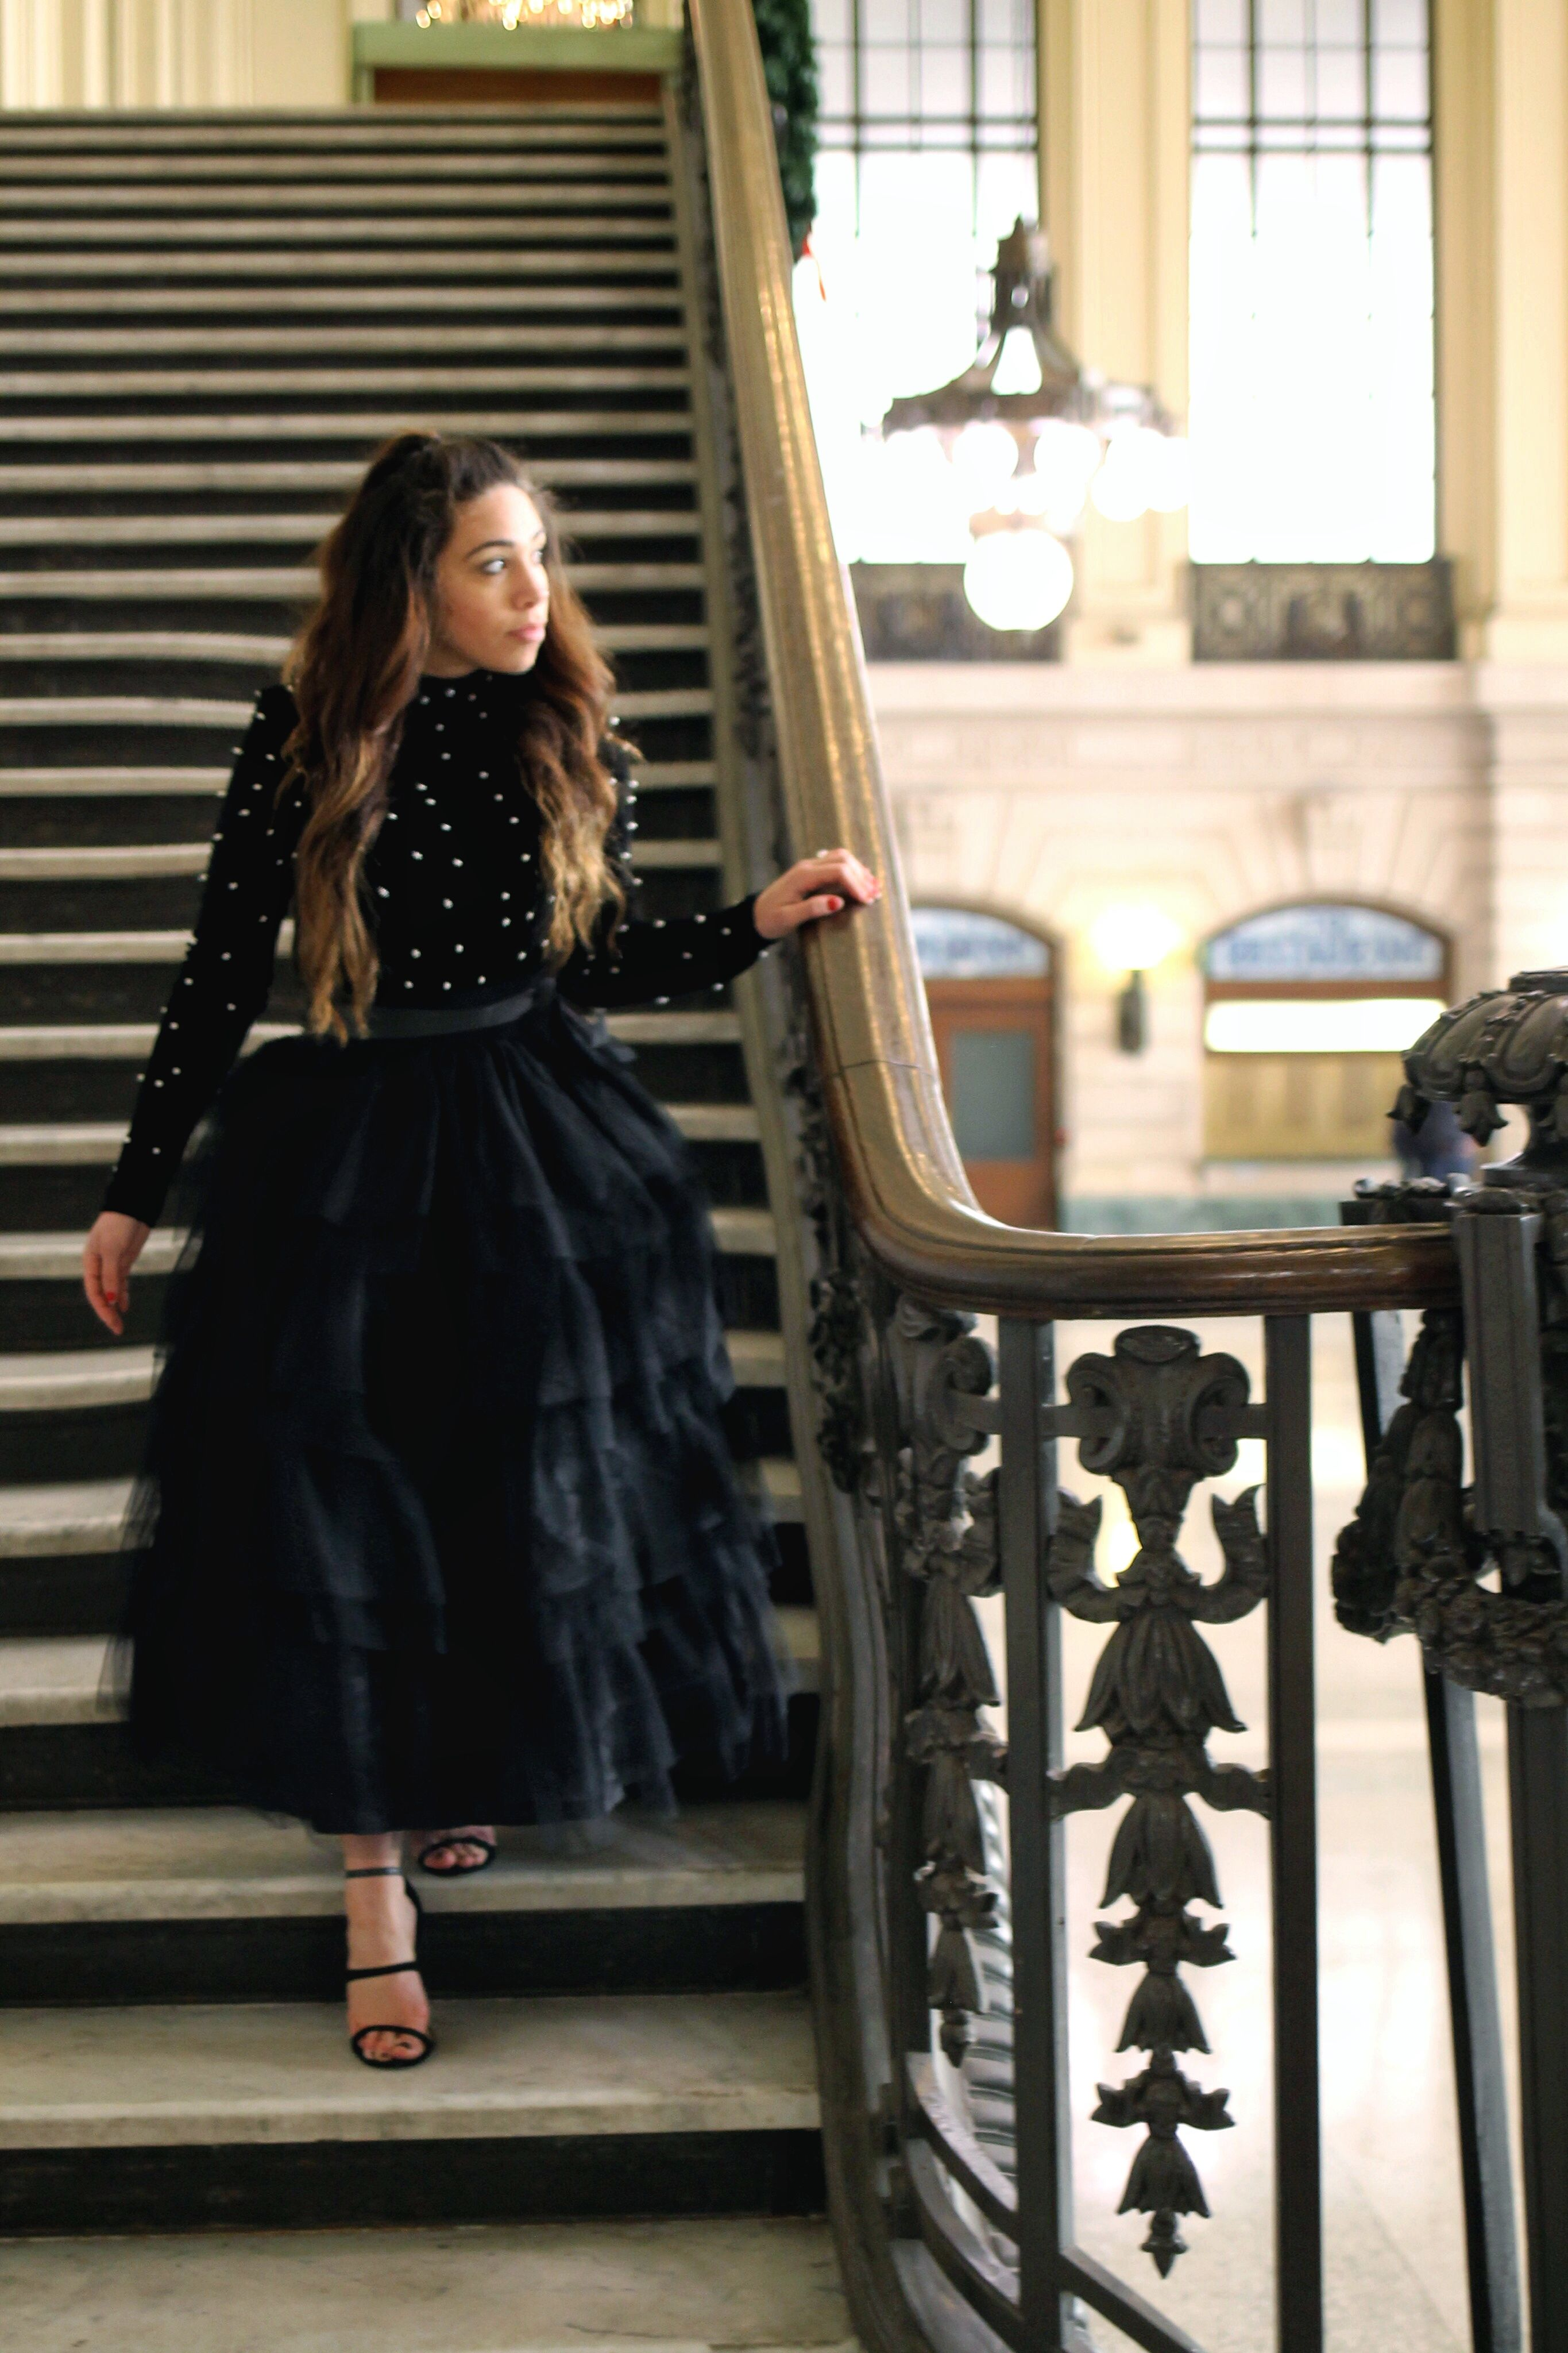 Bayann From Bay S Style Diary Wearing A Black Tulle Skirt And A Long Sleeve Velvet Turtle Neck T Tulle Skirt Black Tulle Skirts Outfit Black Tulle Skirt Outfit [ 4096 x 2730 Pixel ]